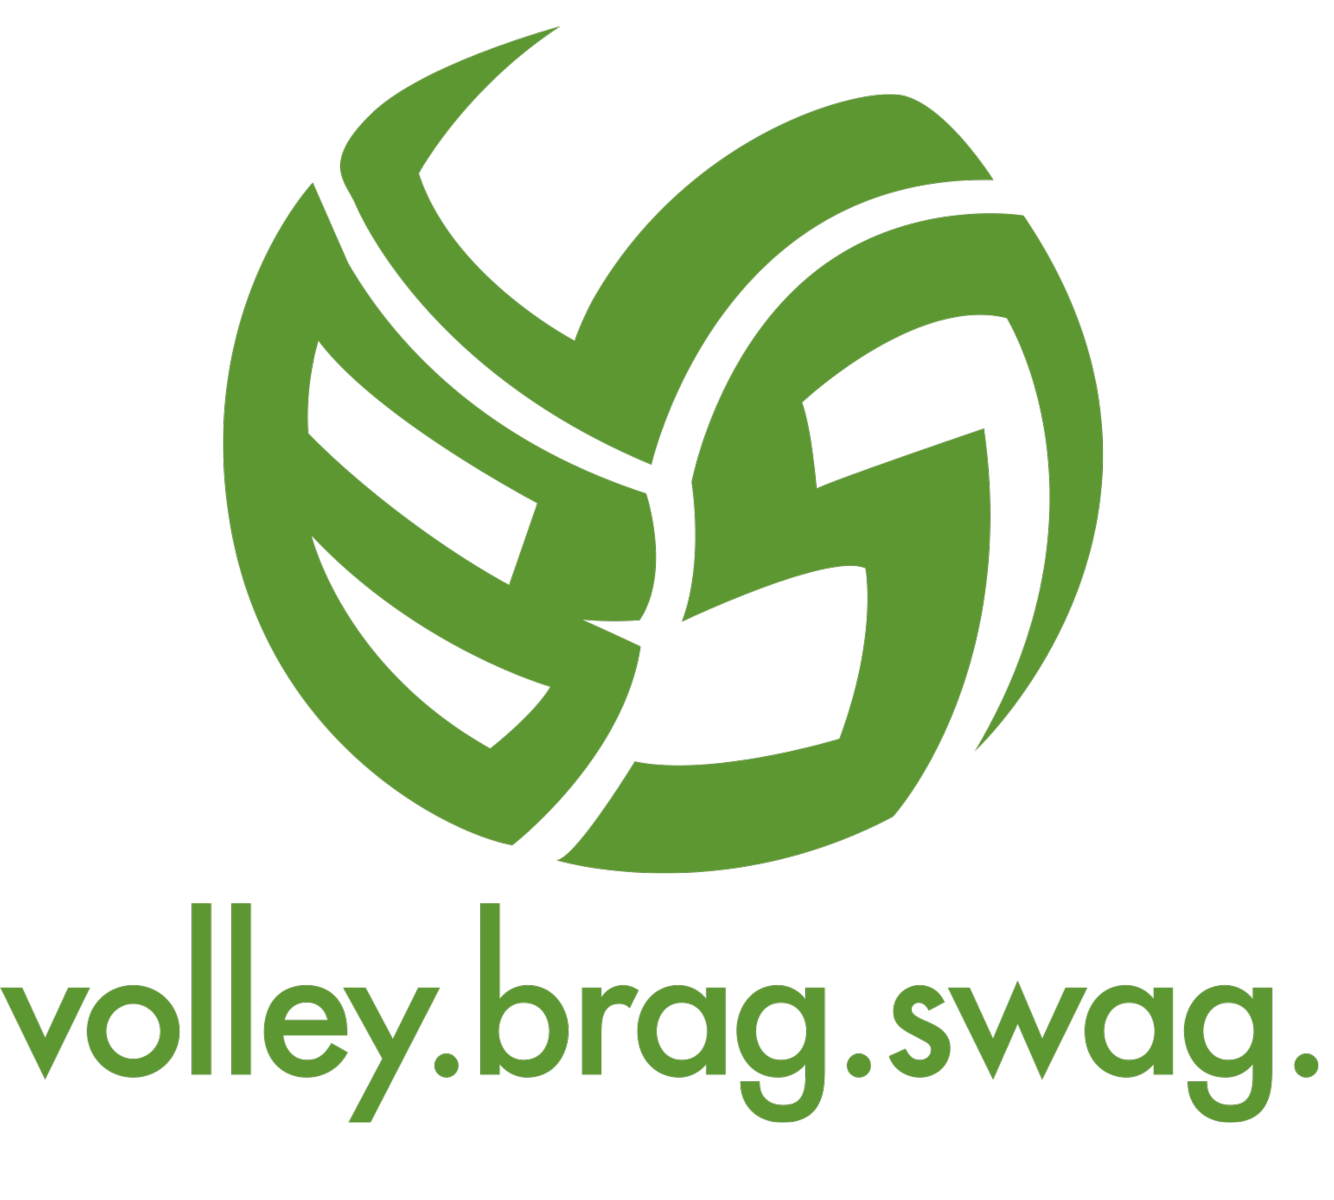 The Volleybragswag Volleyball TShirt Logos